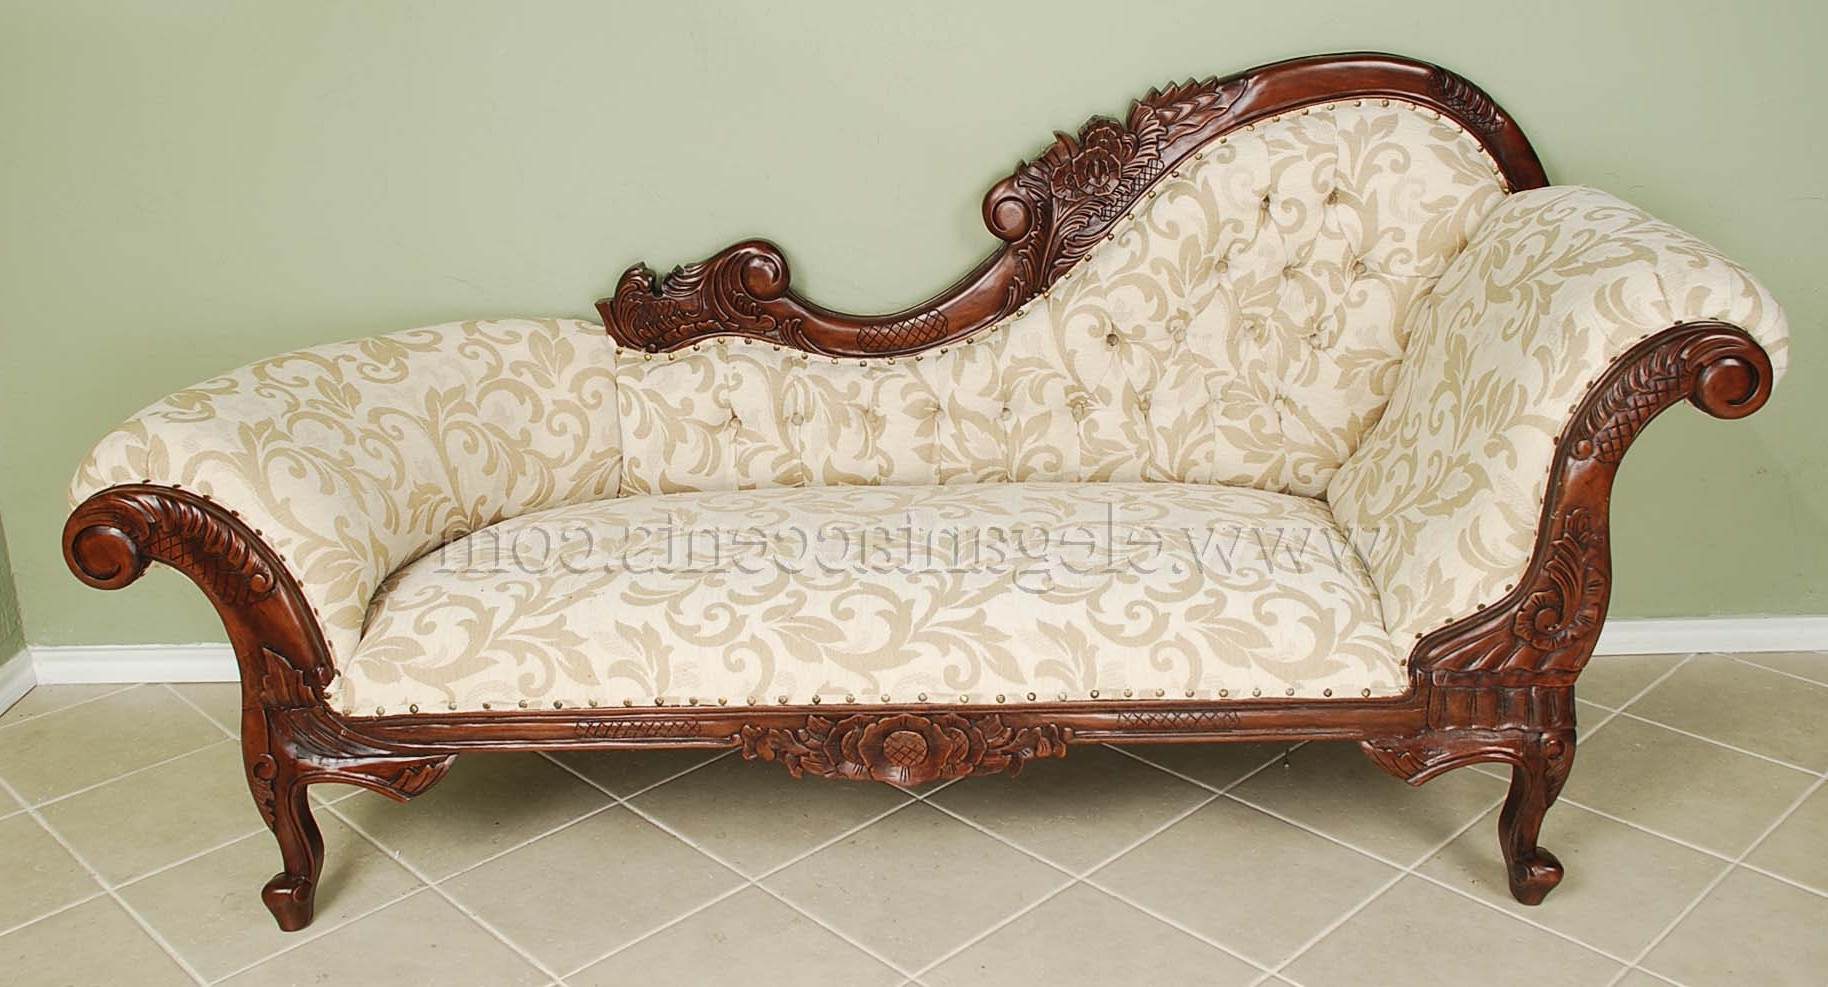 White Chaises Regarding Favorite Products > Chaises, Settees And Sofas (View 12 of 15)